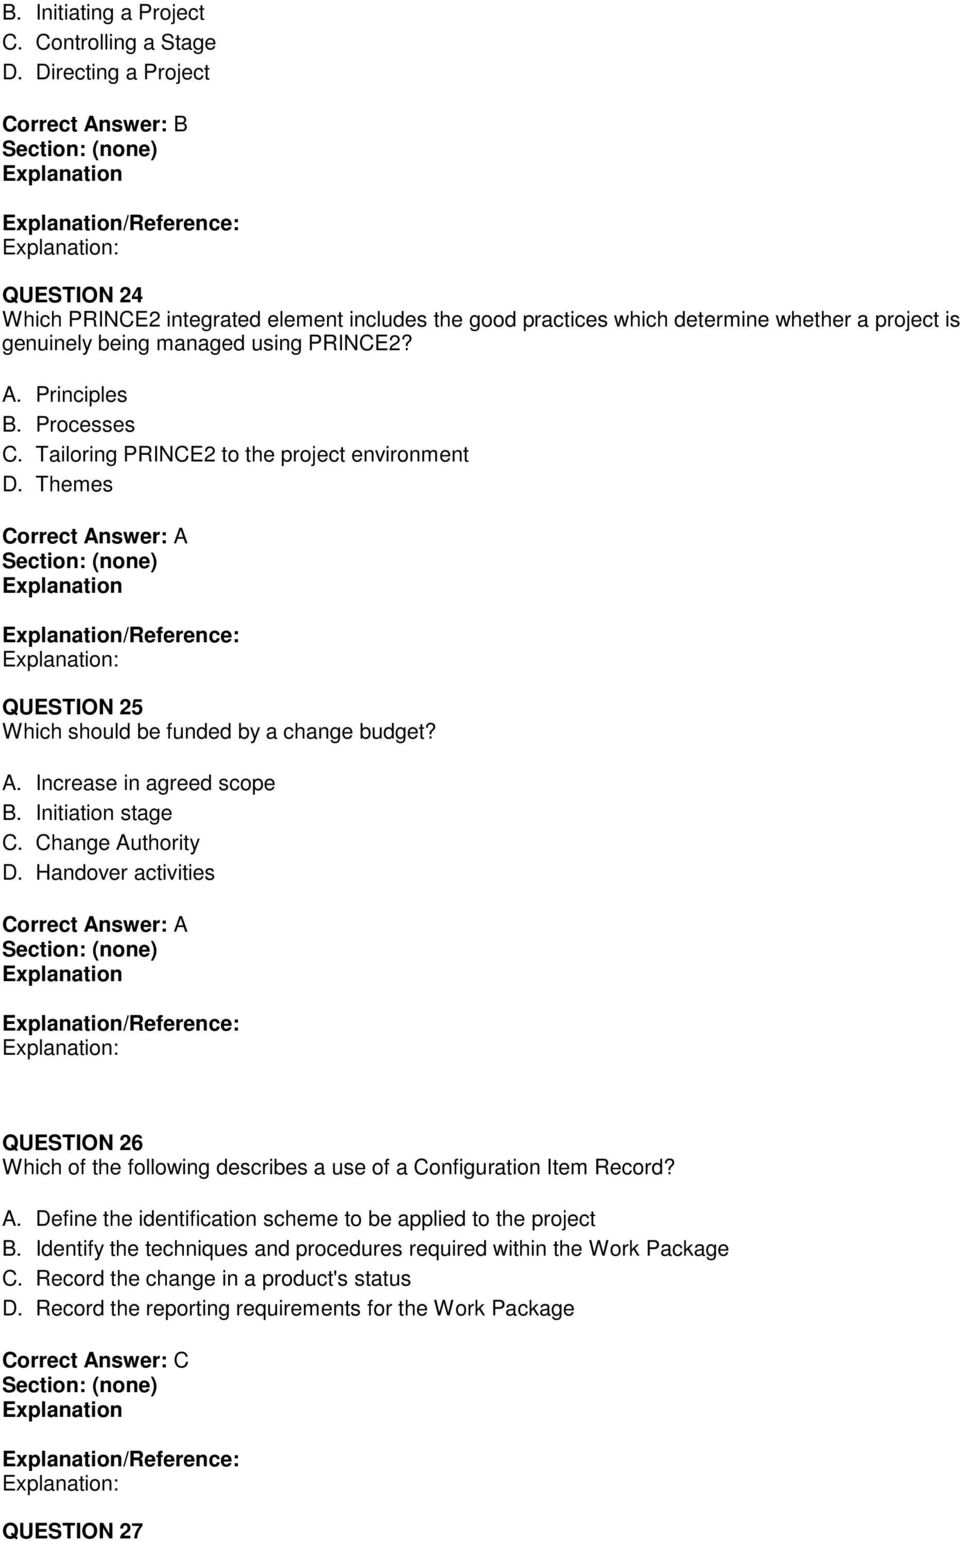 Processes C. Tailoring PRINCE2 to the project environment D. Themes Correct Answer: A /Reference: : QUESTION 25 Which should be funded by a change budget? A. Increase in agreed scope B.